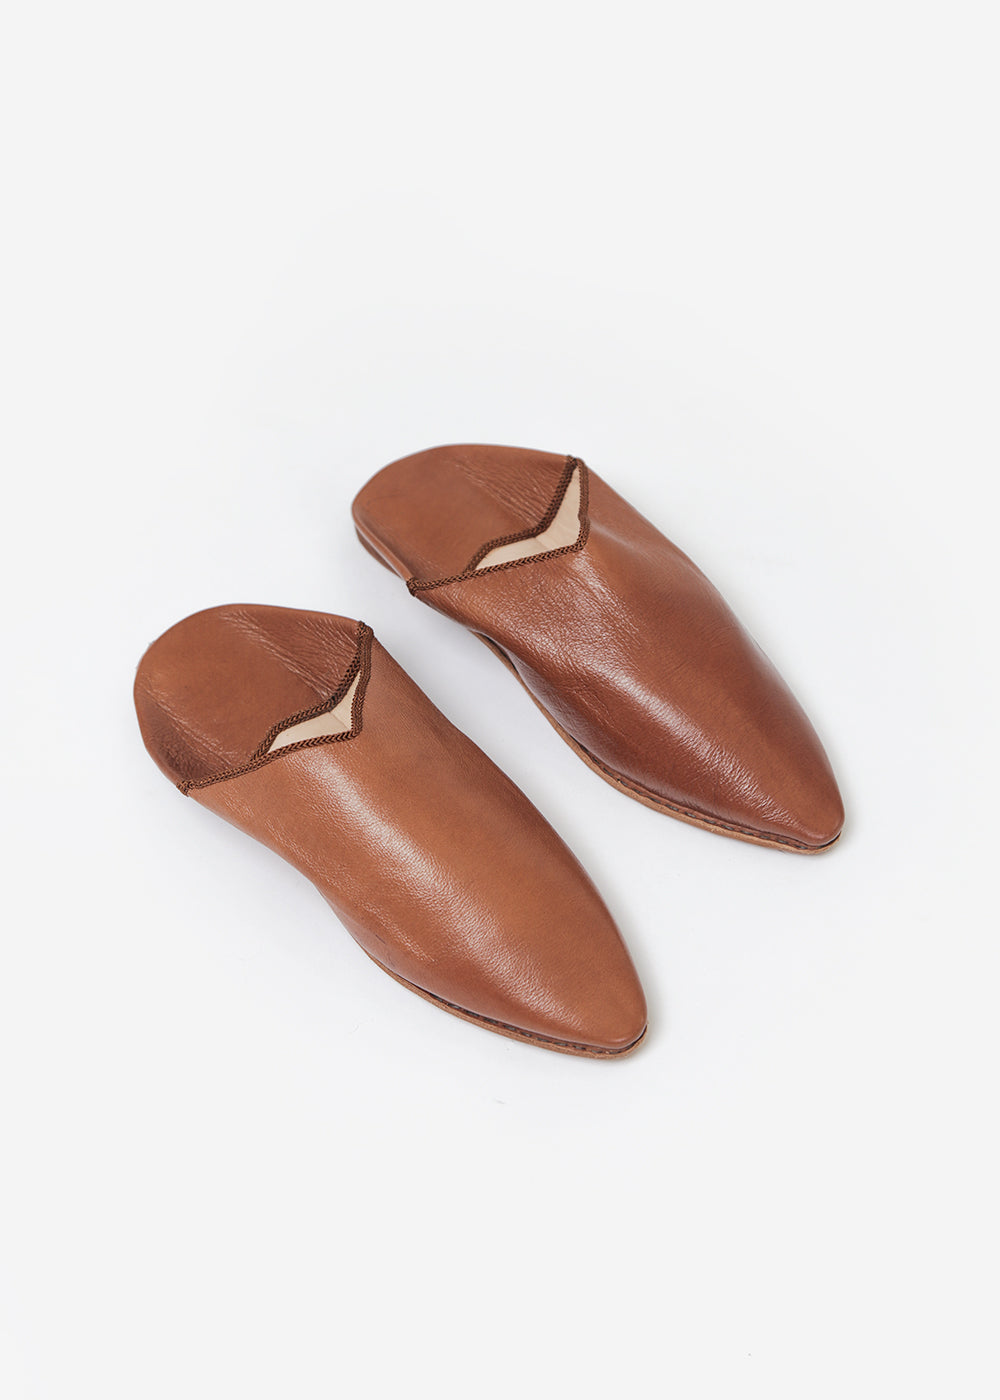 Bronze Age Camel Massa Leather Babouche — Shop sustainable fashion and slow fashion at New Classics Studios